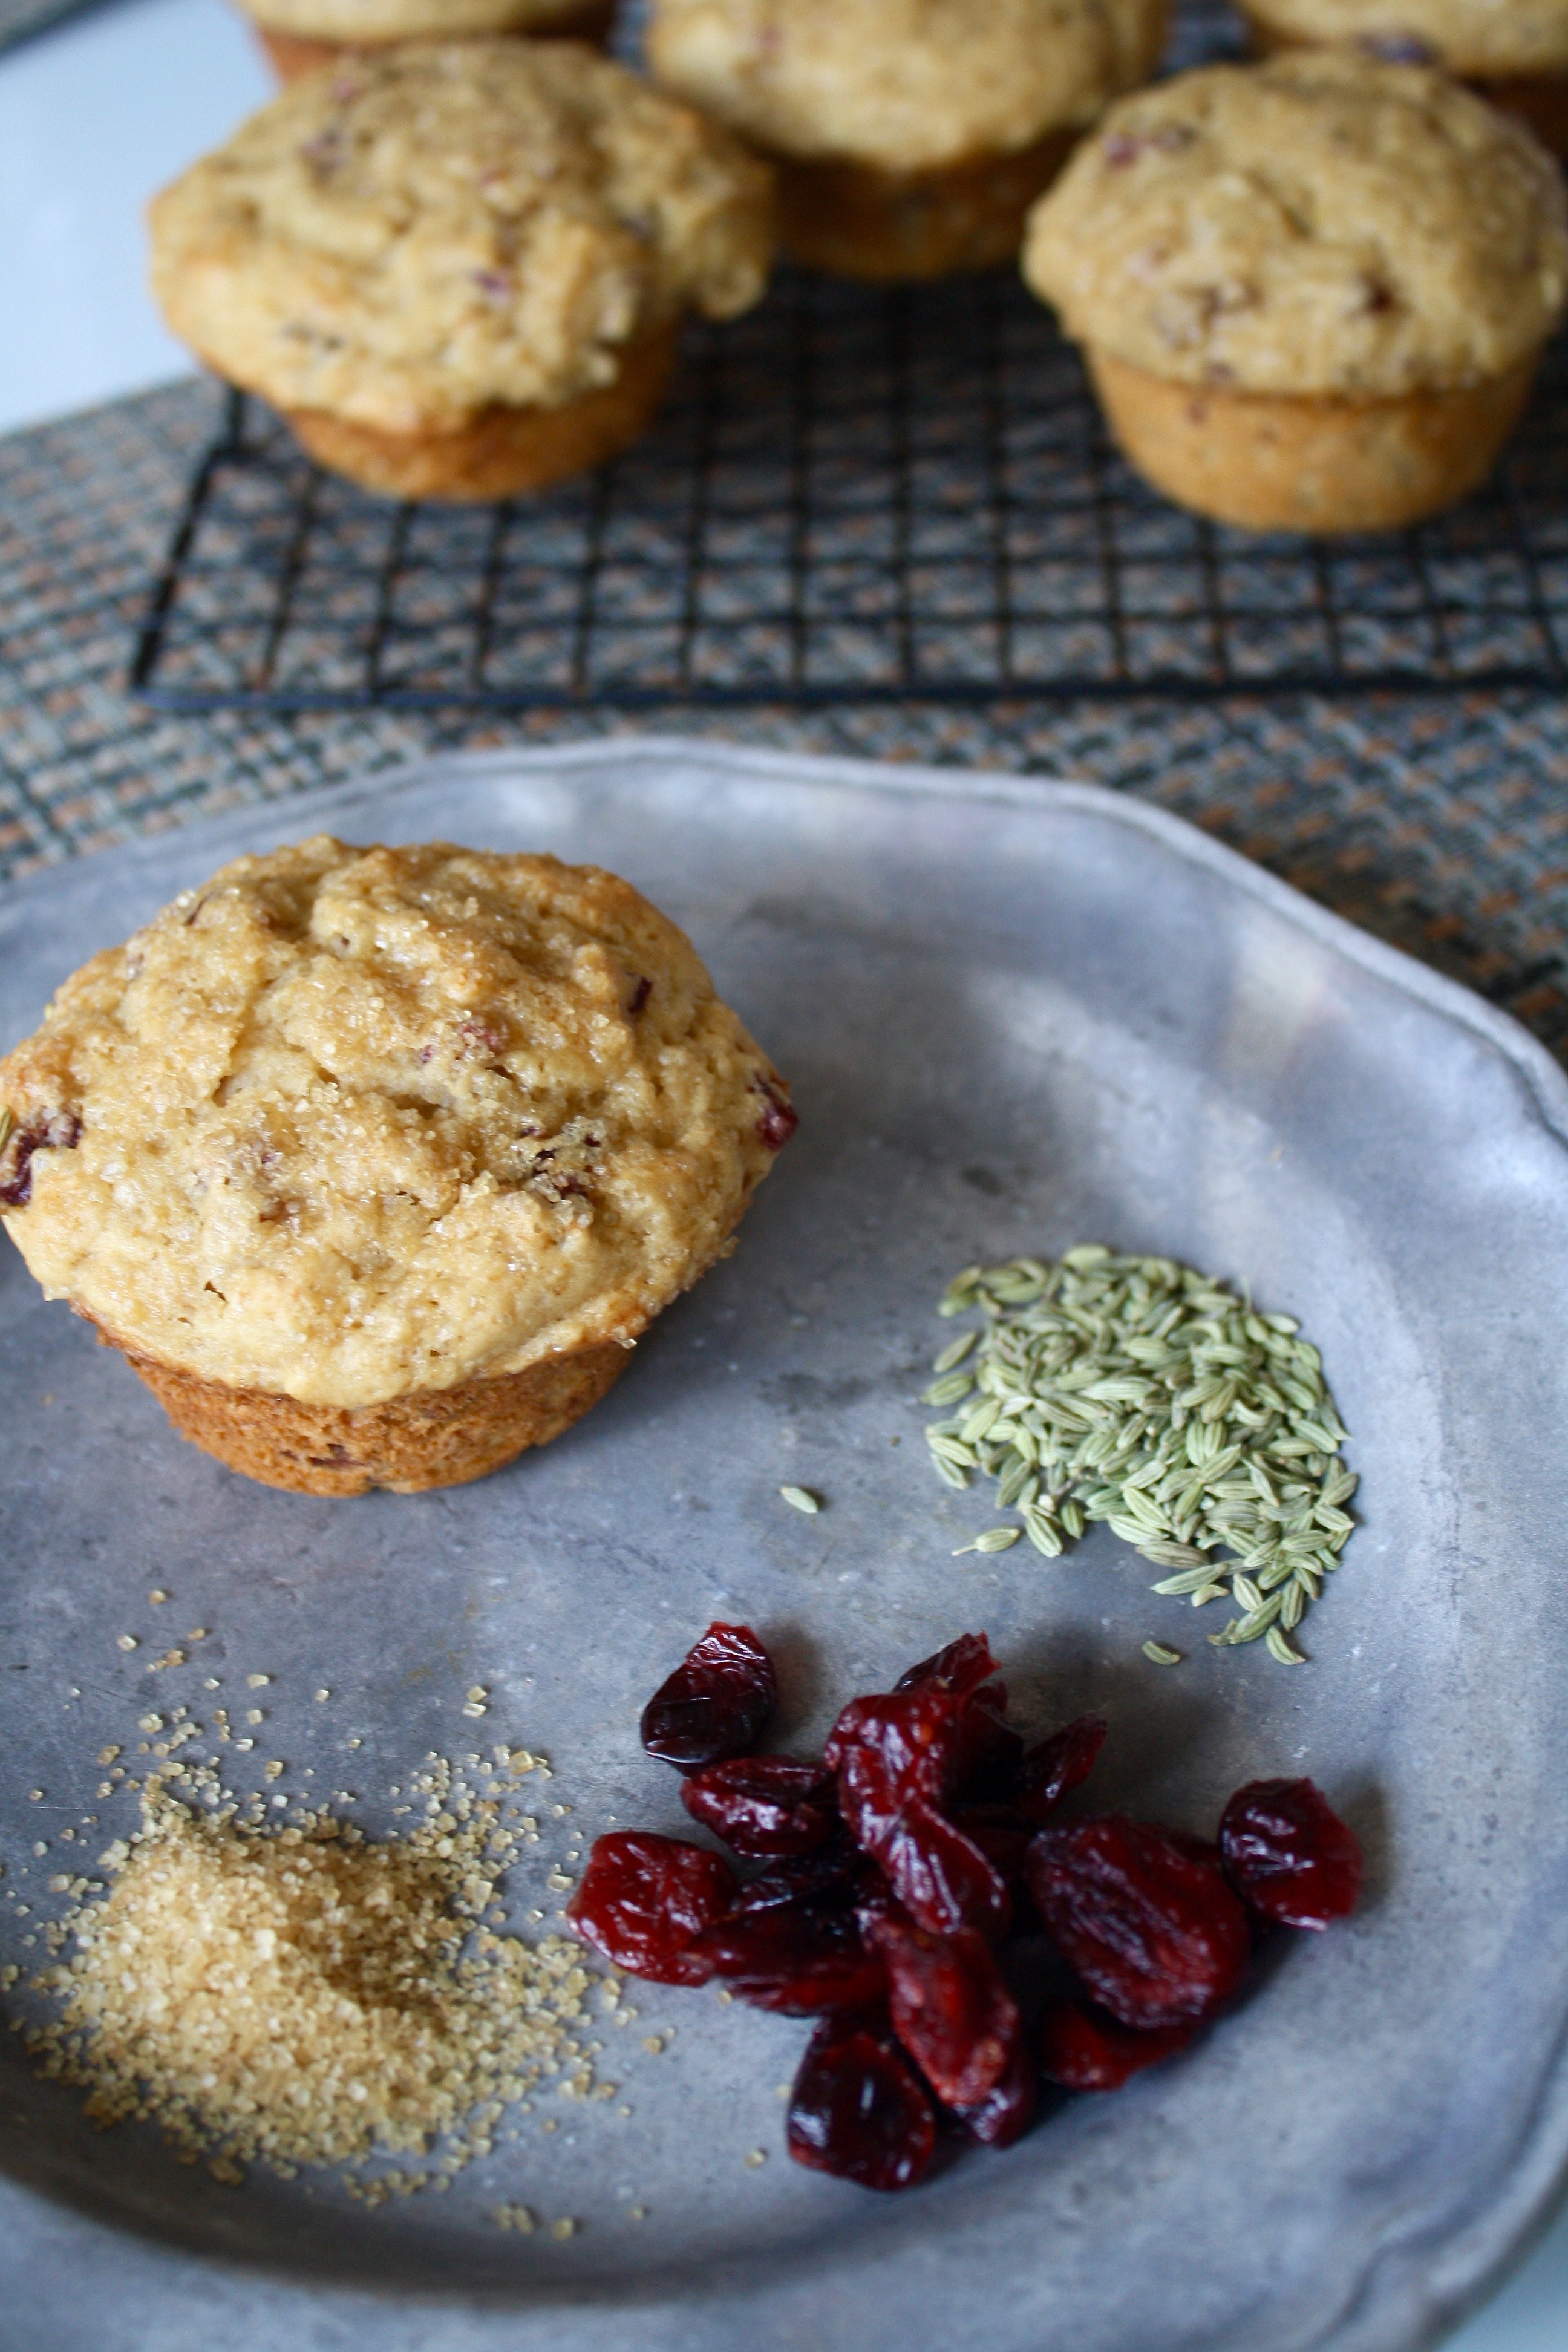 Photograph of pear muffins on a wire baking sheet set on a white table with a metal plate